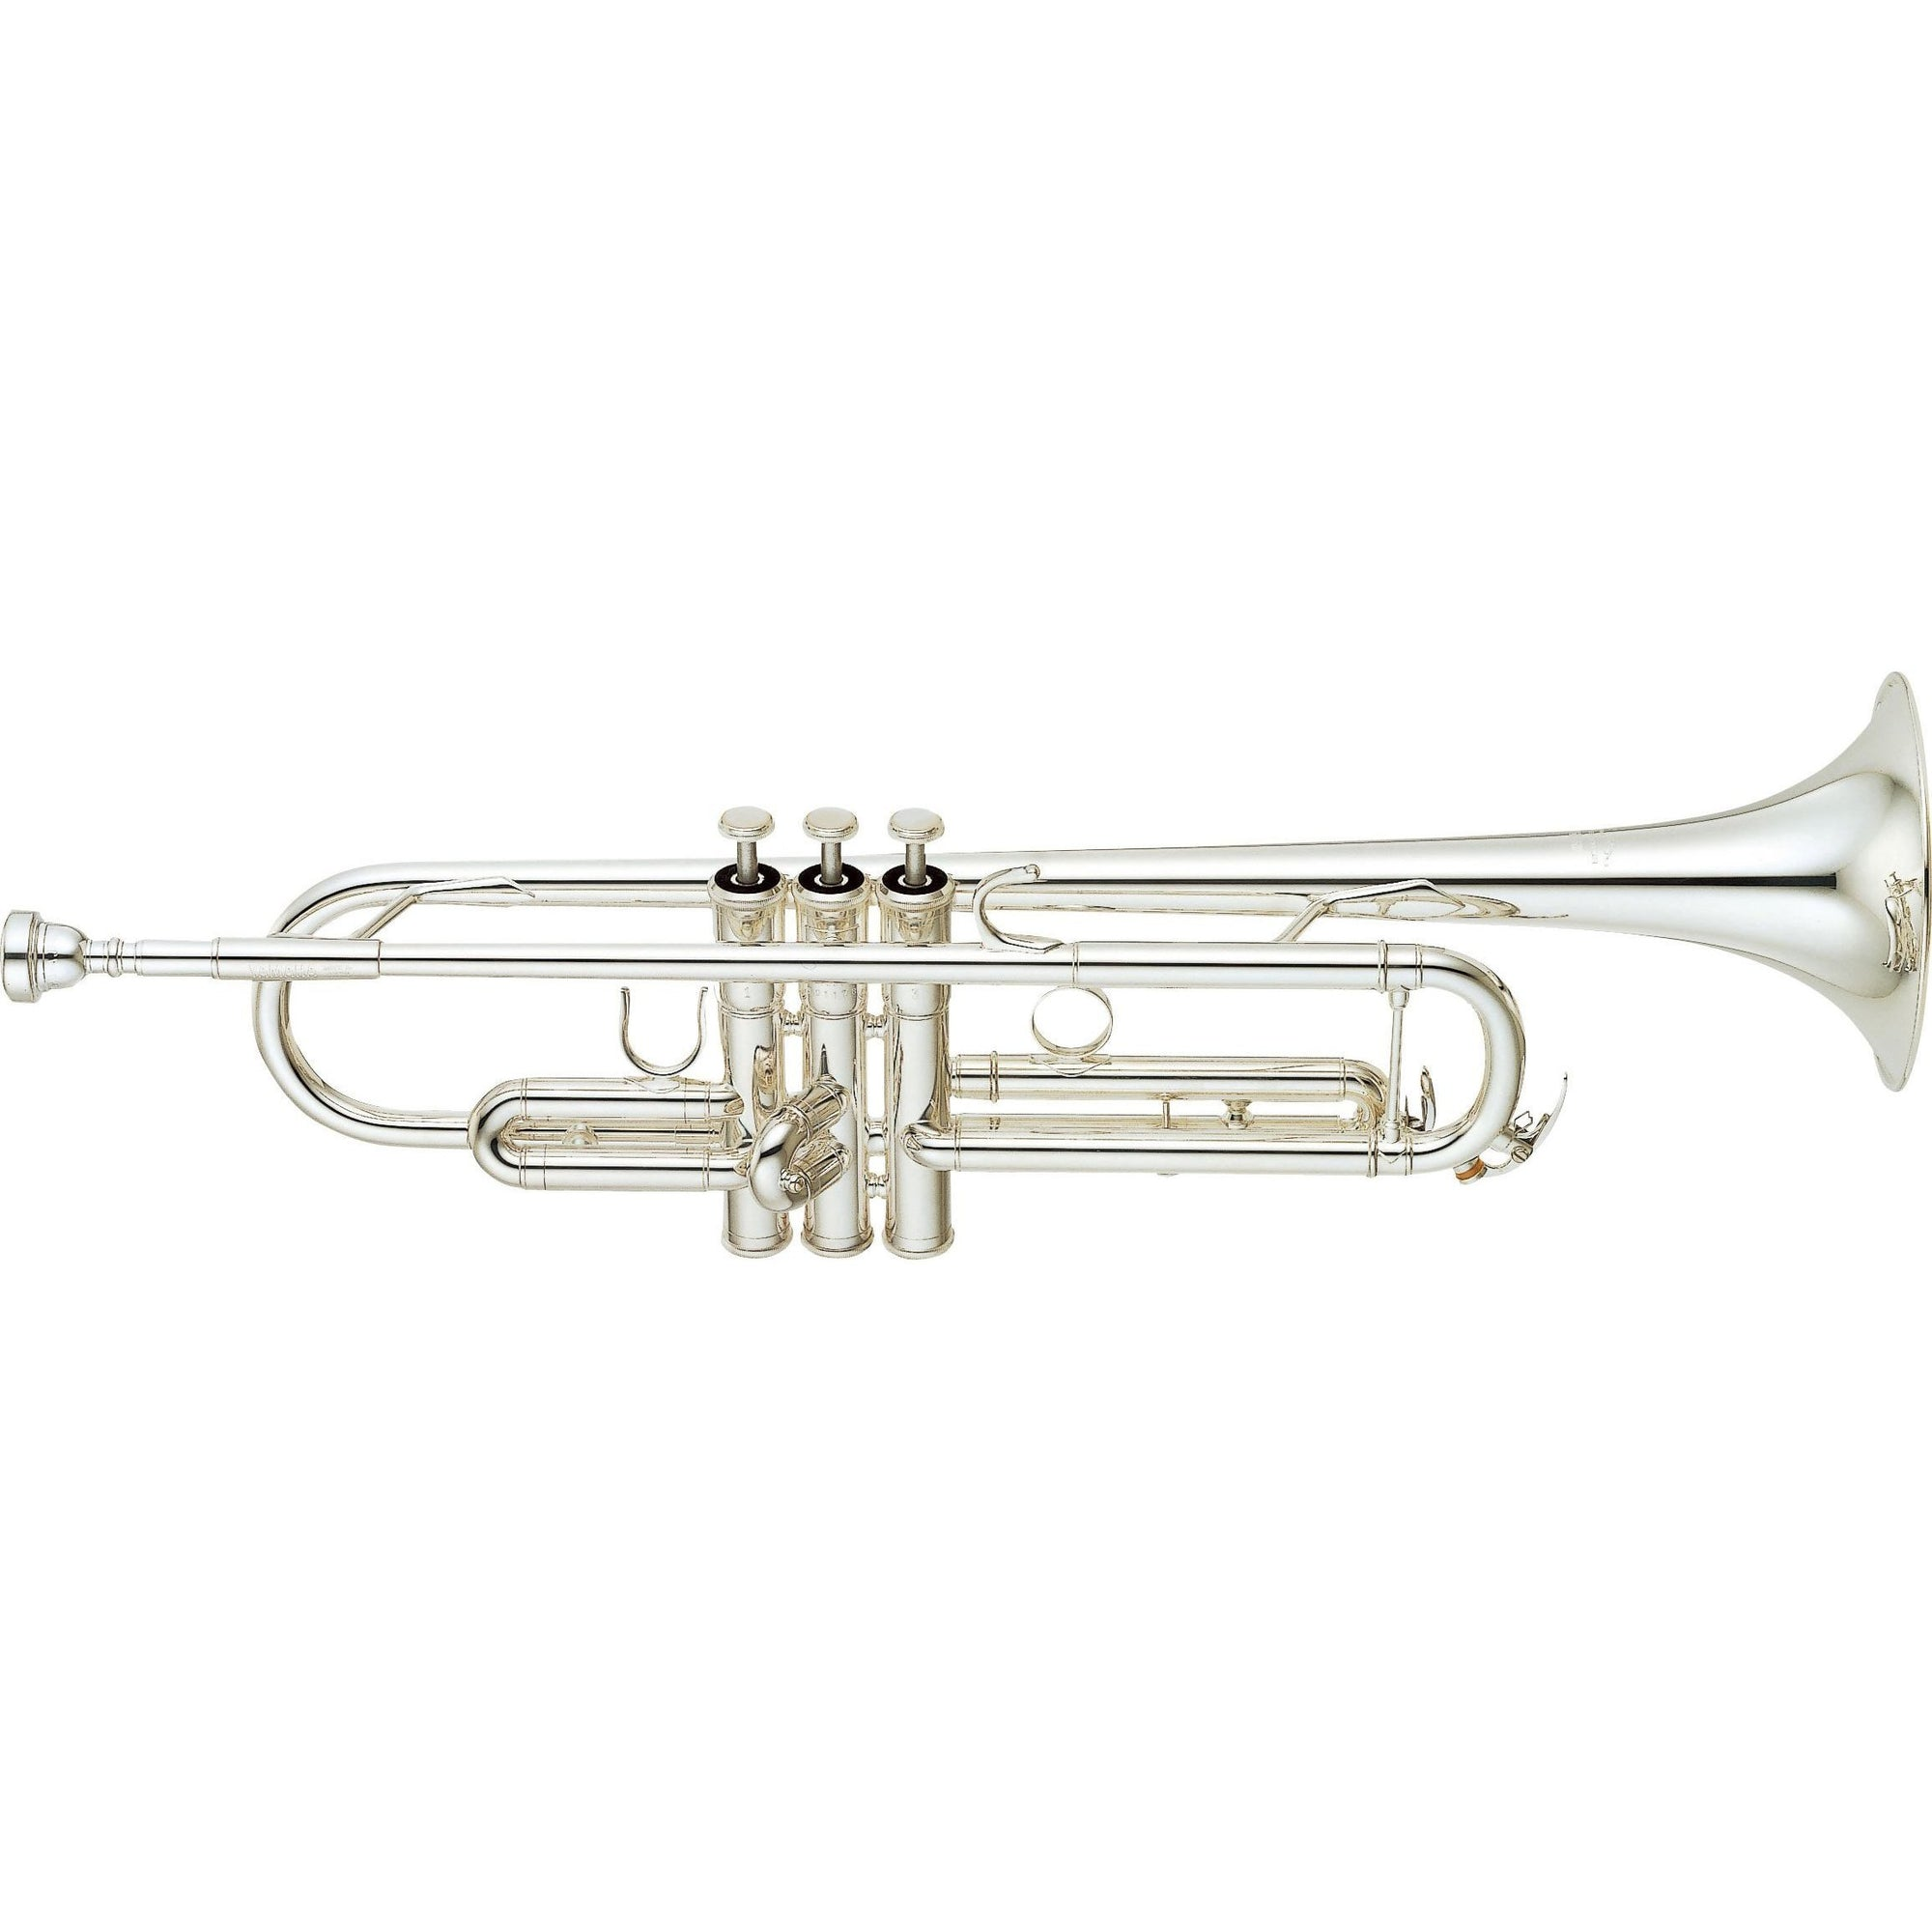 Yamaha - YTR-6345GS - Professional Bb Trumpet-Trumpet-Yamaha-Music Elements